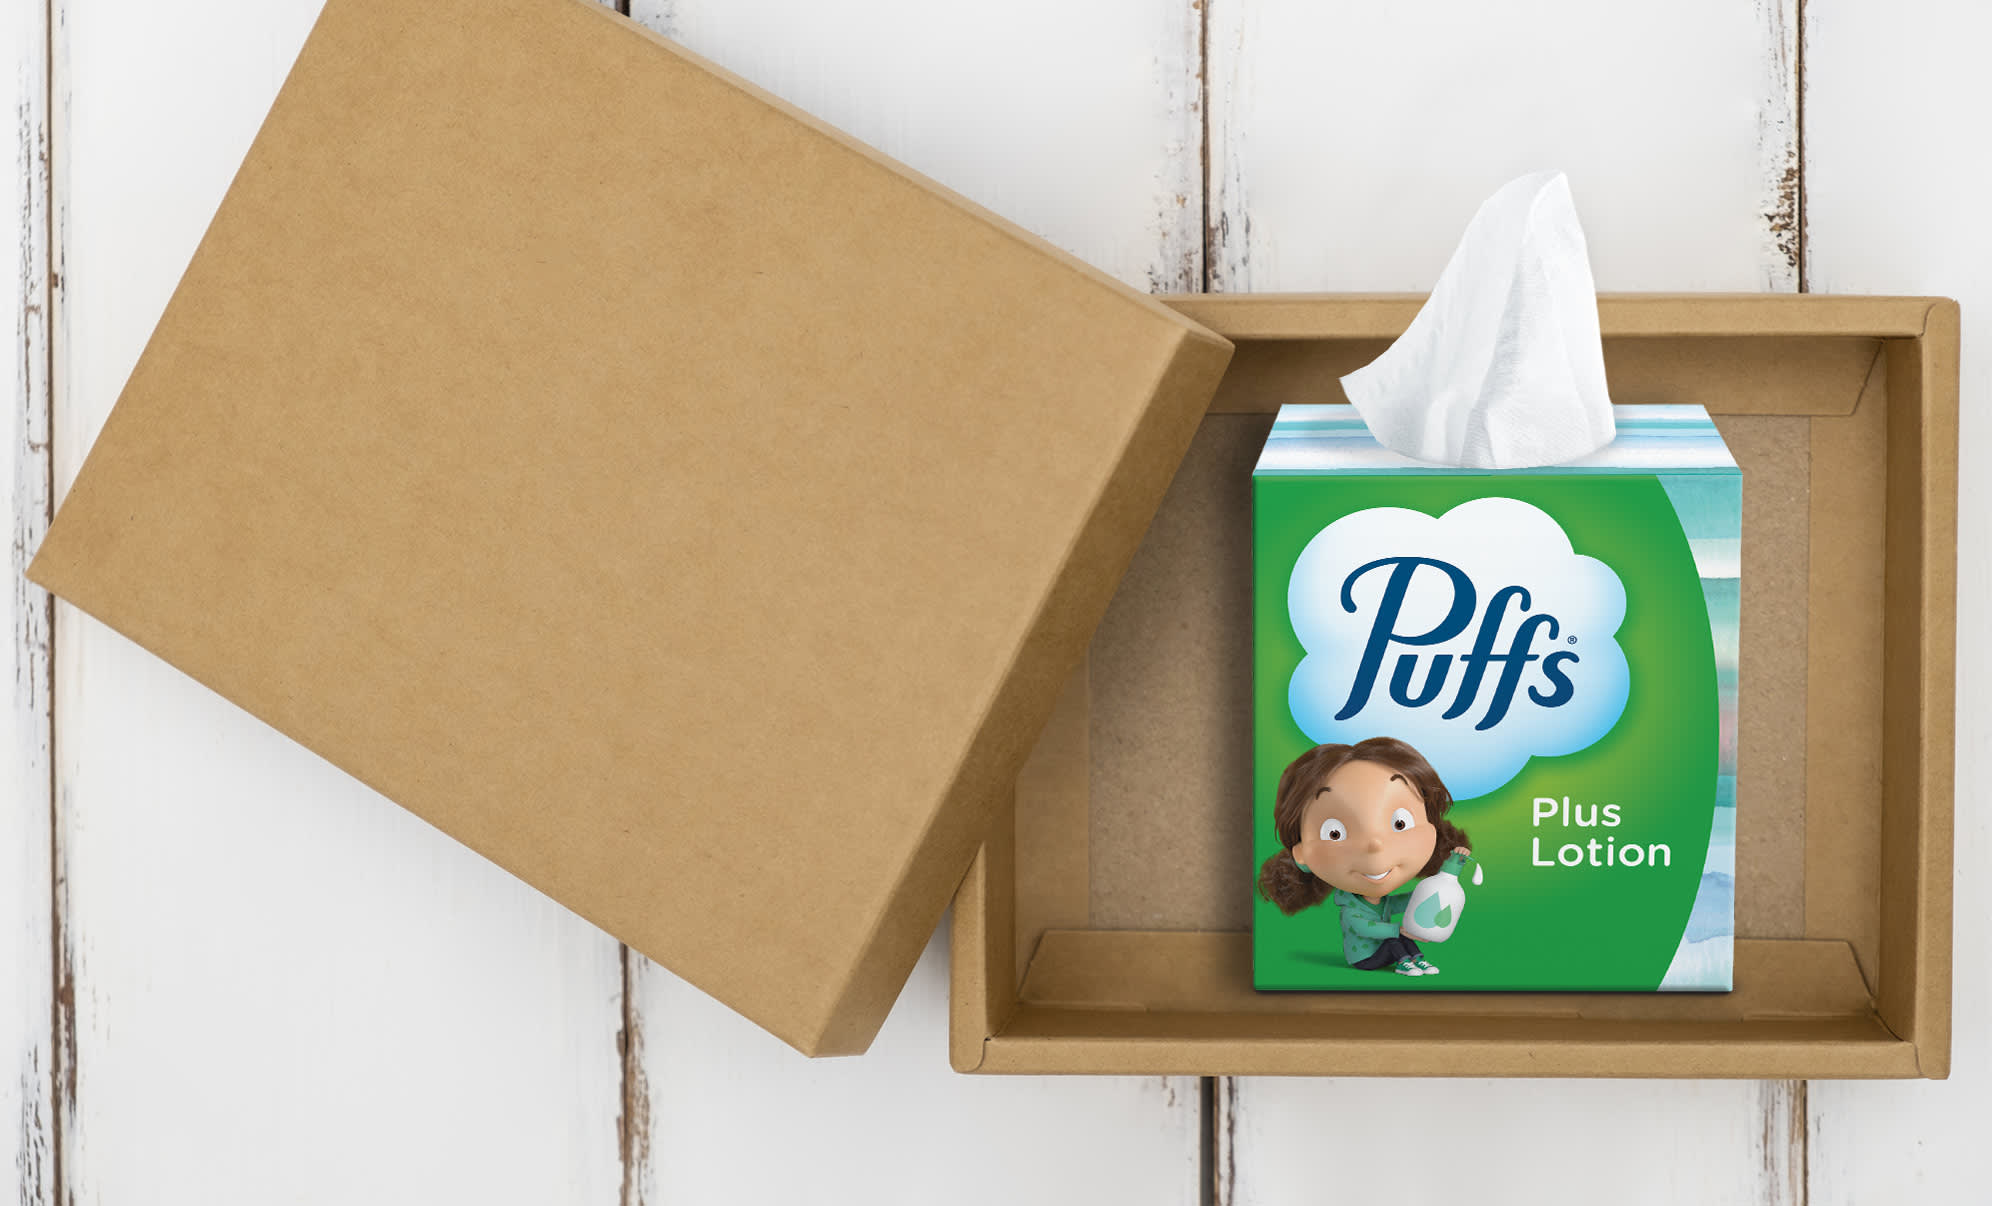 Puffs Plus Lotion box of tissues sitting on the table